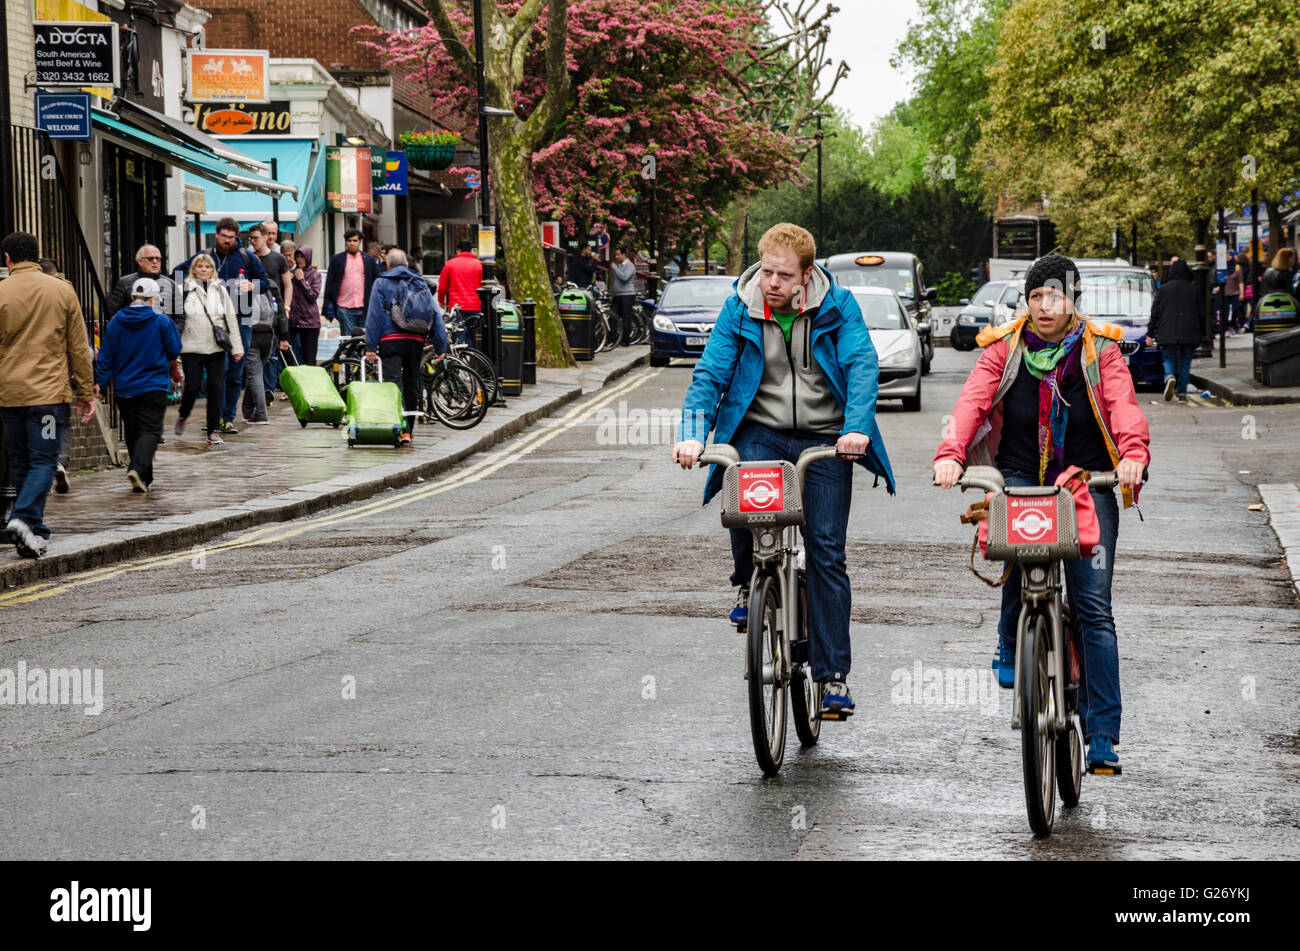 a-couple-of-cyclists-on-boris-bikes-ride